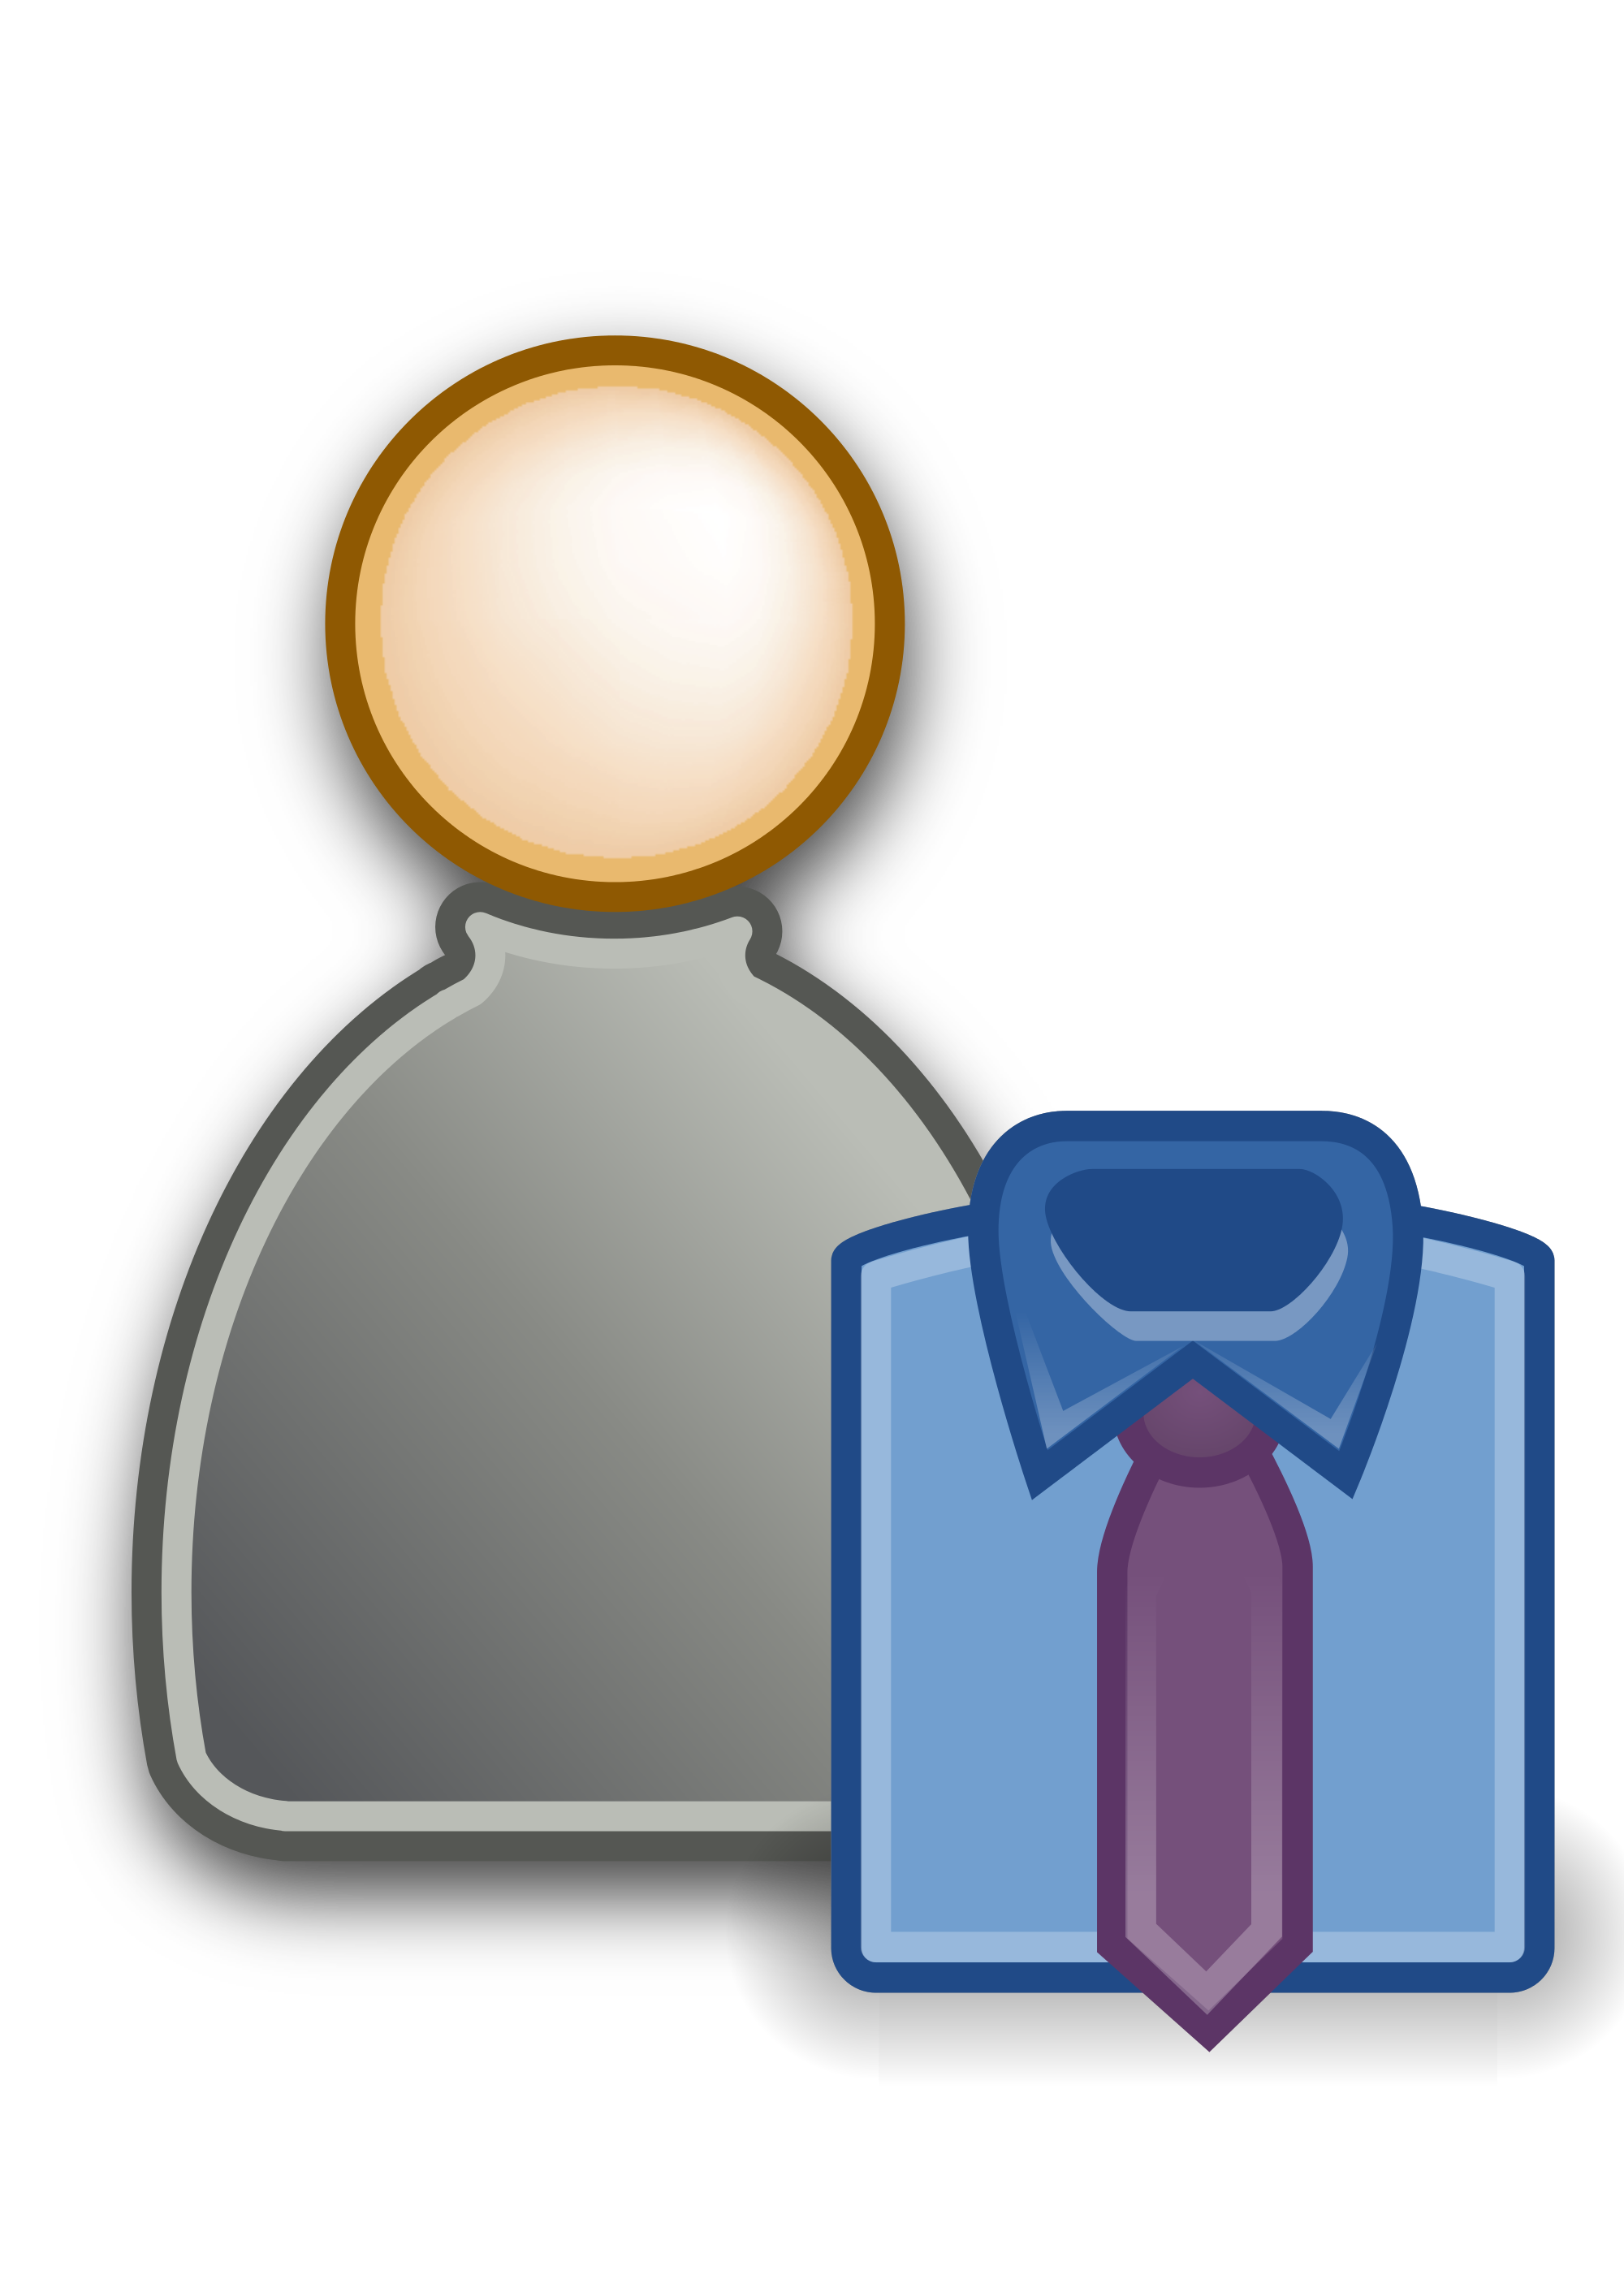 File user svg wikimedia. Manager clipart material management